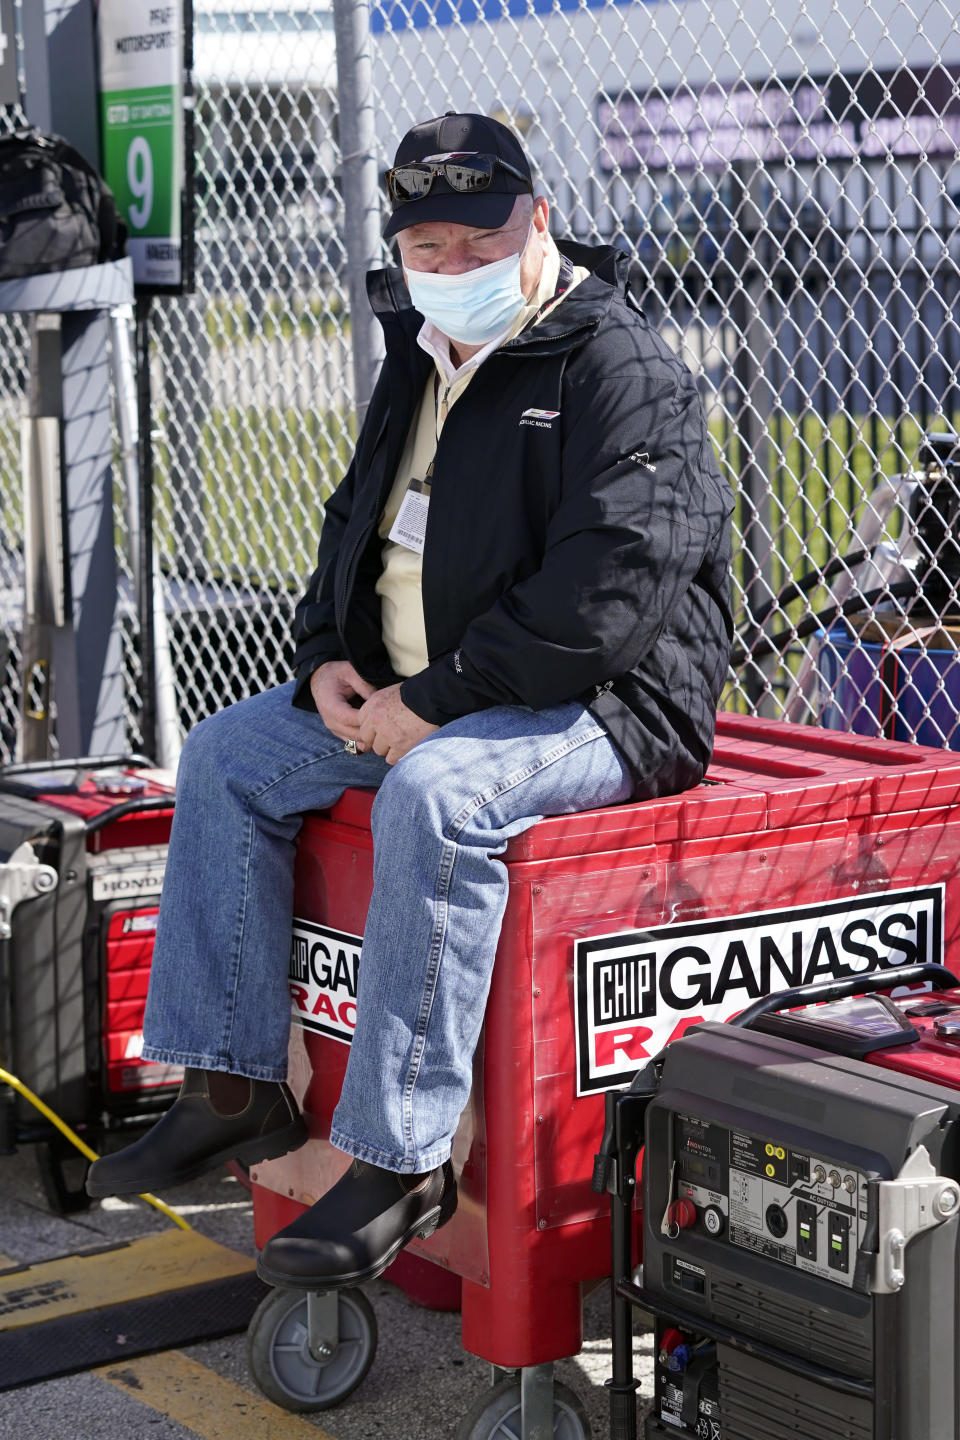 Chip Ganassi, owner of Chip Ganassi Racing, takes a break outside his pit stall during a practice session for the Rolex 24 hour race at Daytona International Speedway, Friday, Jan. 29, 2021, in Daytona Beach, Fla. (AP Photo/John Raoux)